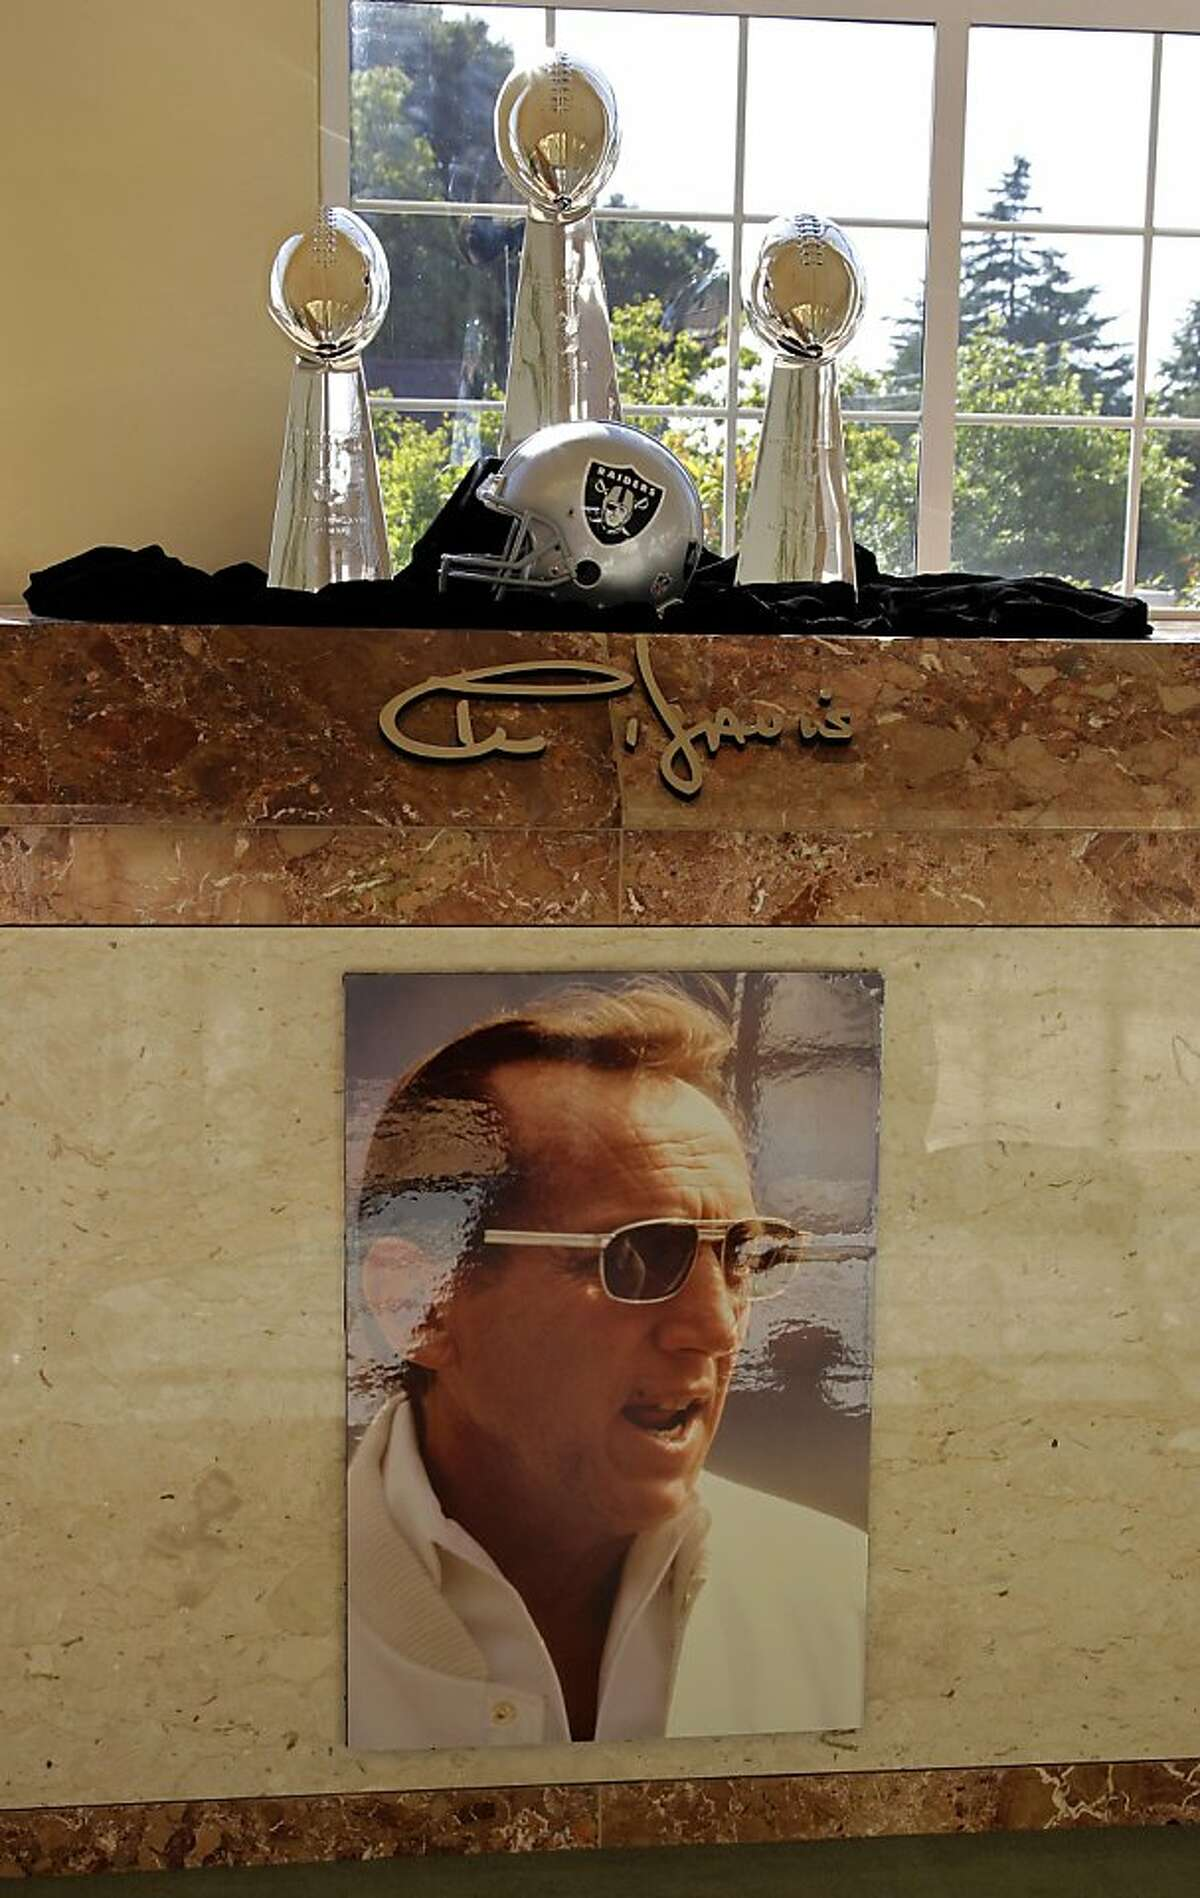 The crypt of Al Davis is seen adorned with an Oakland Raider helmet and three Super Bowl trophies Monday, Oct. 17, 2011, at the Chapel of the Chimes in Oakland, Calif. The final resting place of the Raiders former majority owner will be beside American blues singer-songwriter and guitarist, John Lee Hooker, and cost $100,000. (AP Photo/Ben Margot)